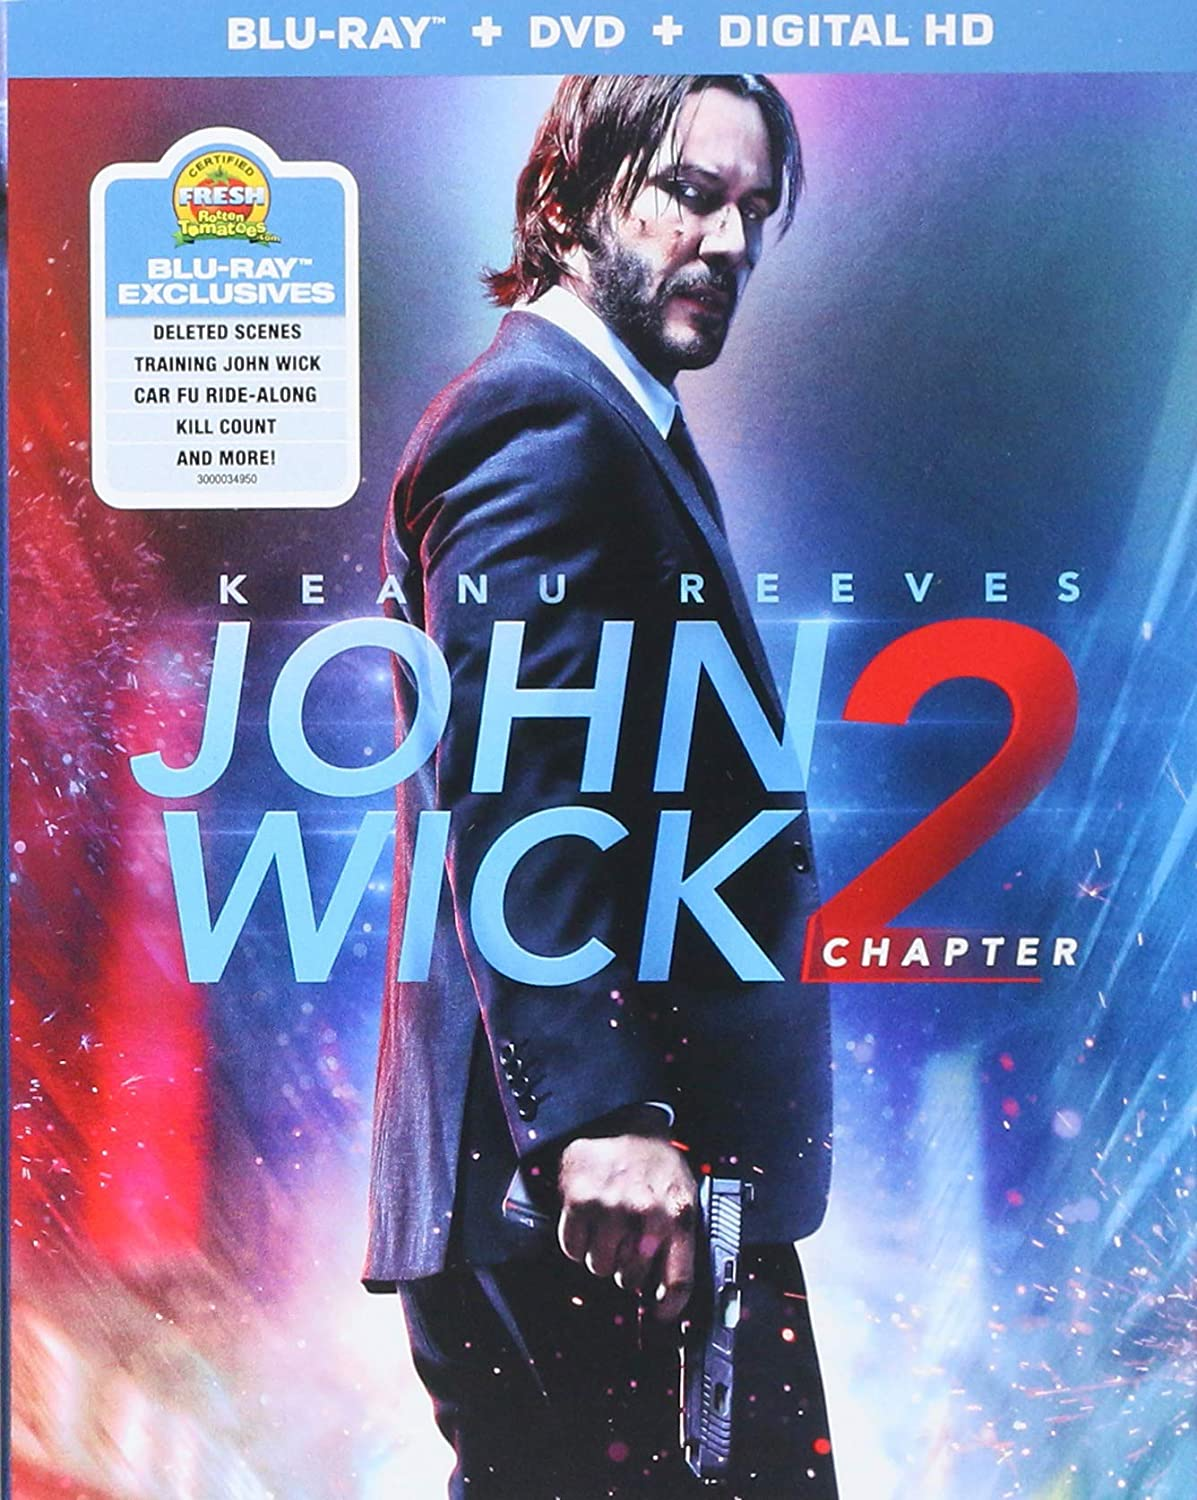 Amazoncom John Wick Chapter 2 Blu Raydvd Digital Hd